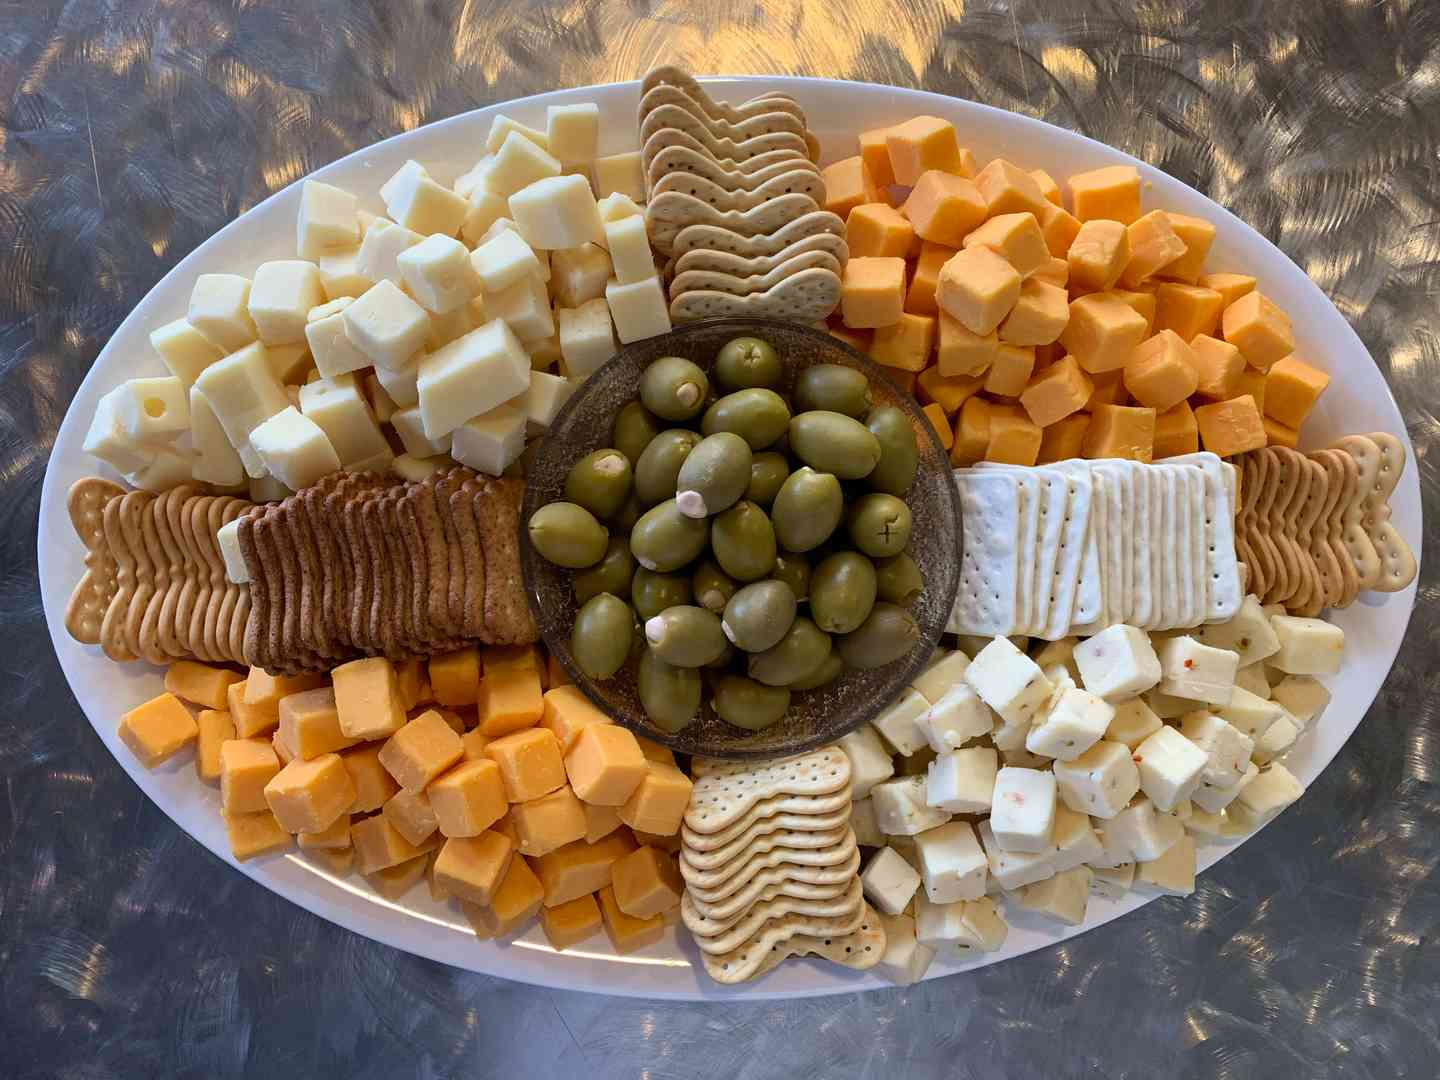 Cheese and Cracker Plate